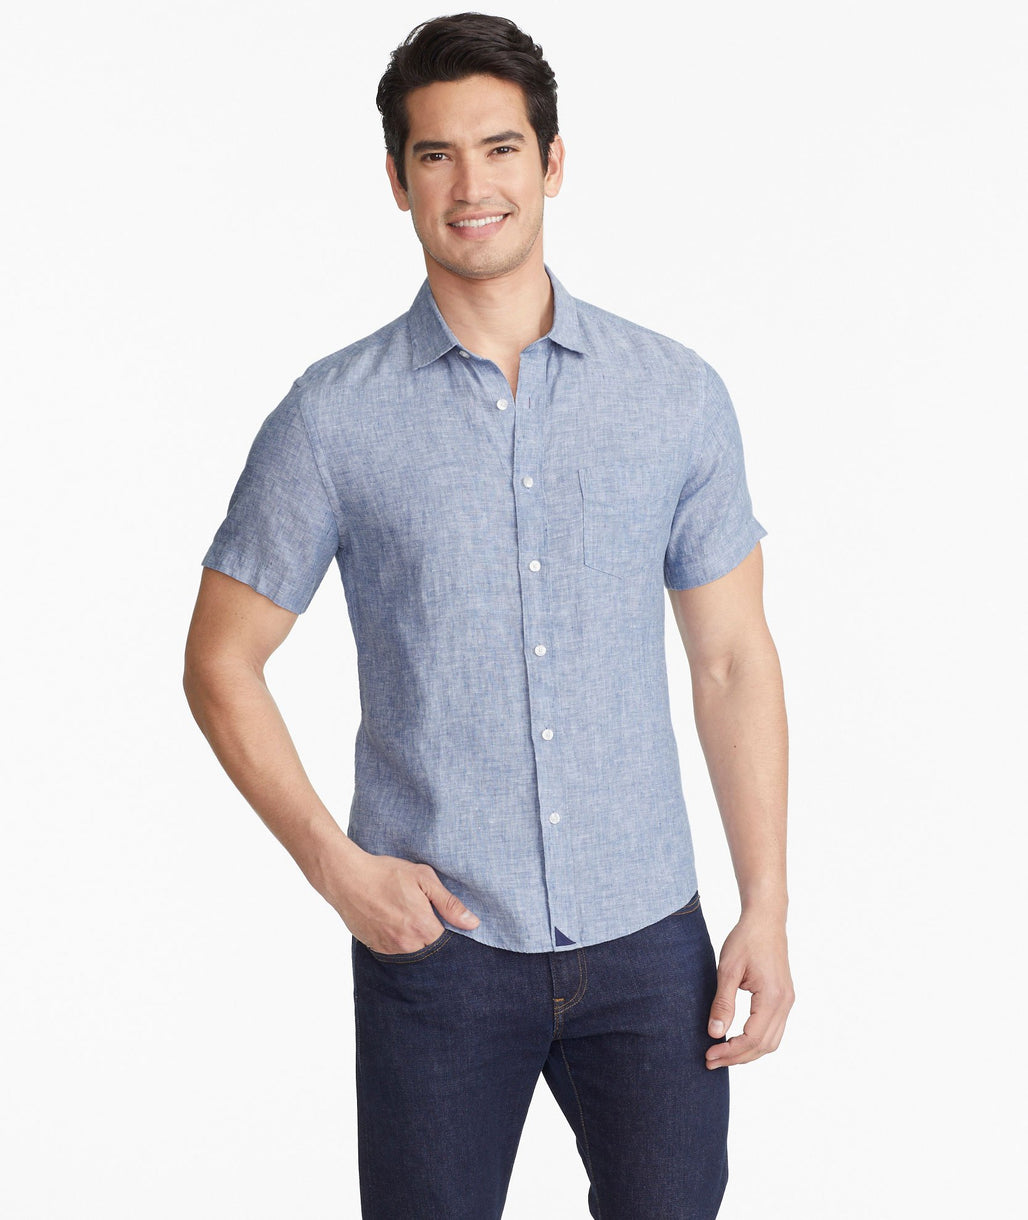 Model wearing a Blue Wrinkle-Resistant Short-Sleeve Linen Shirt